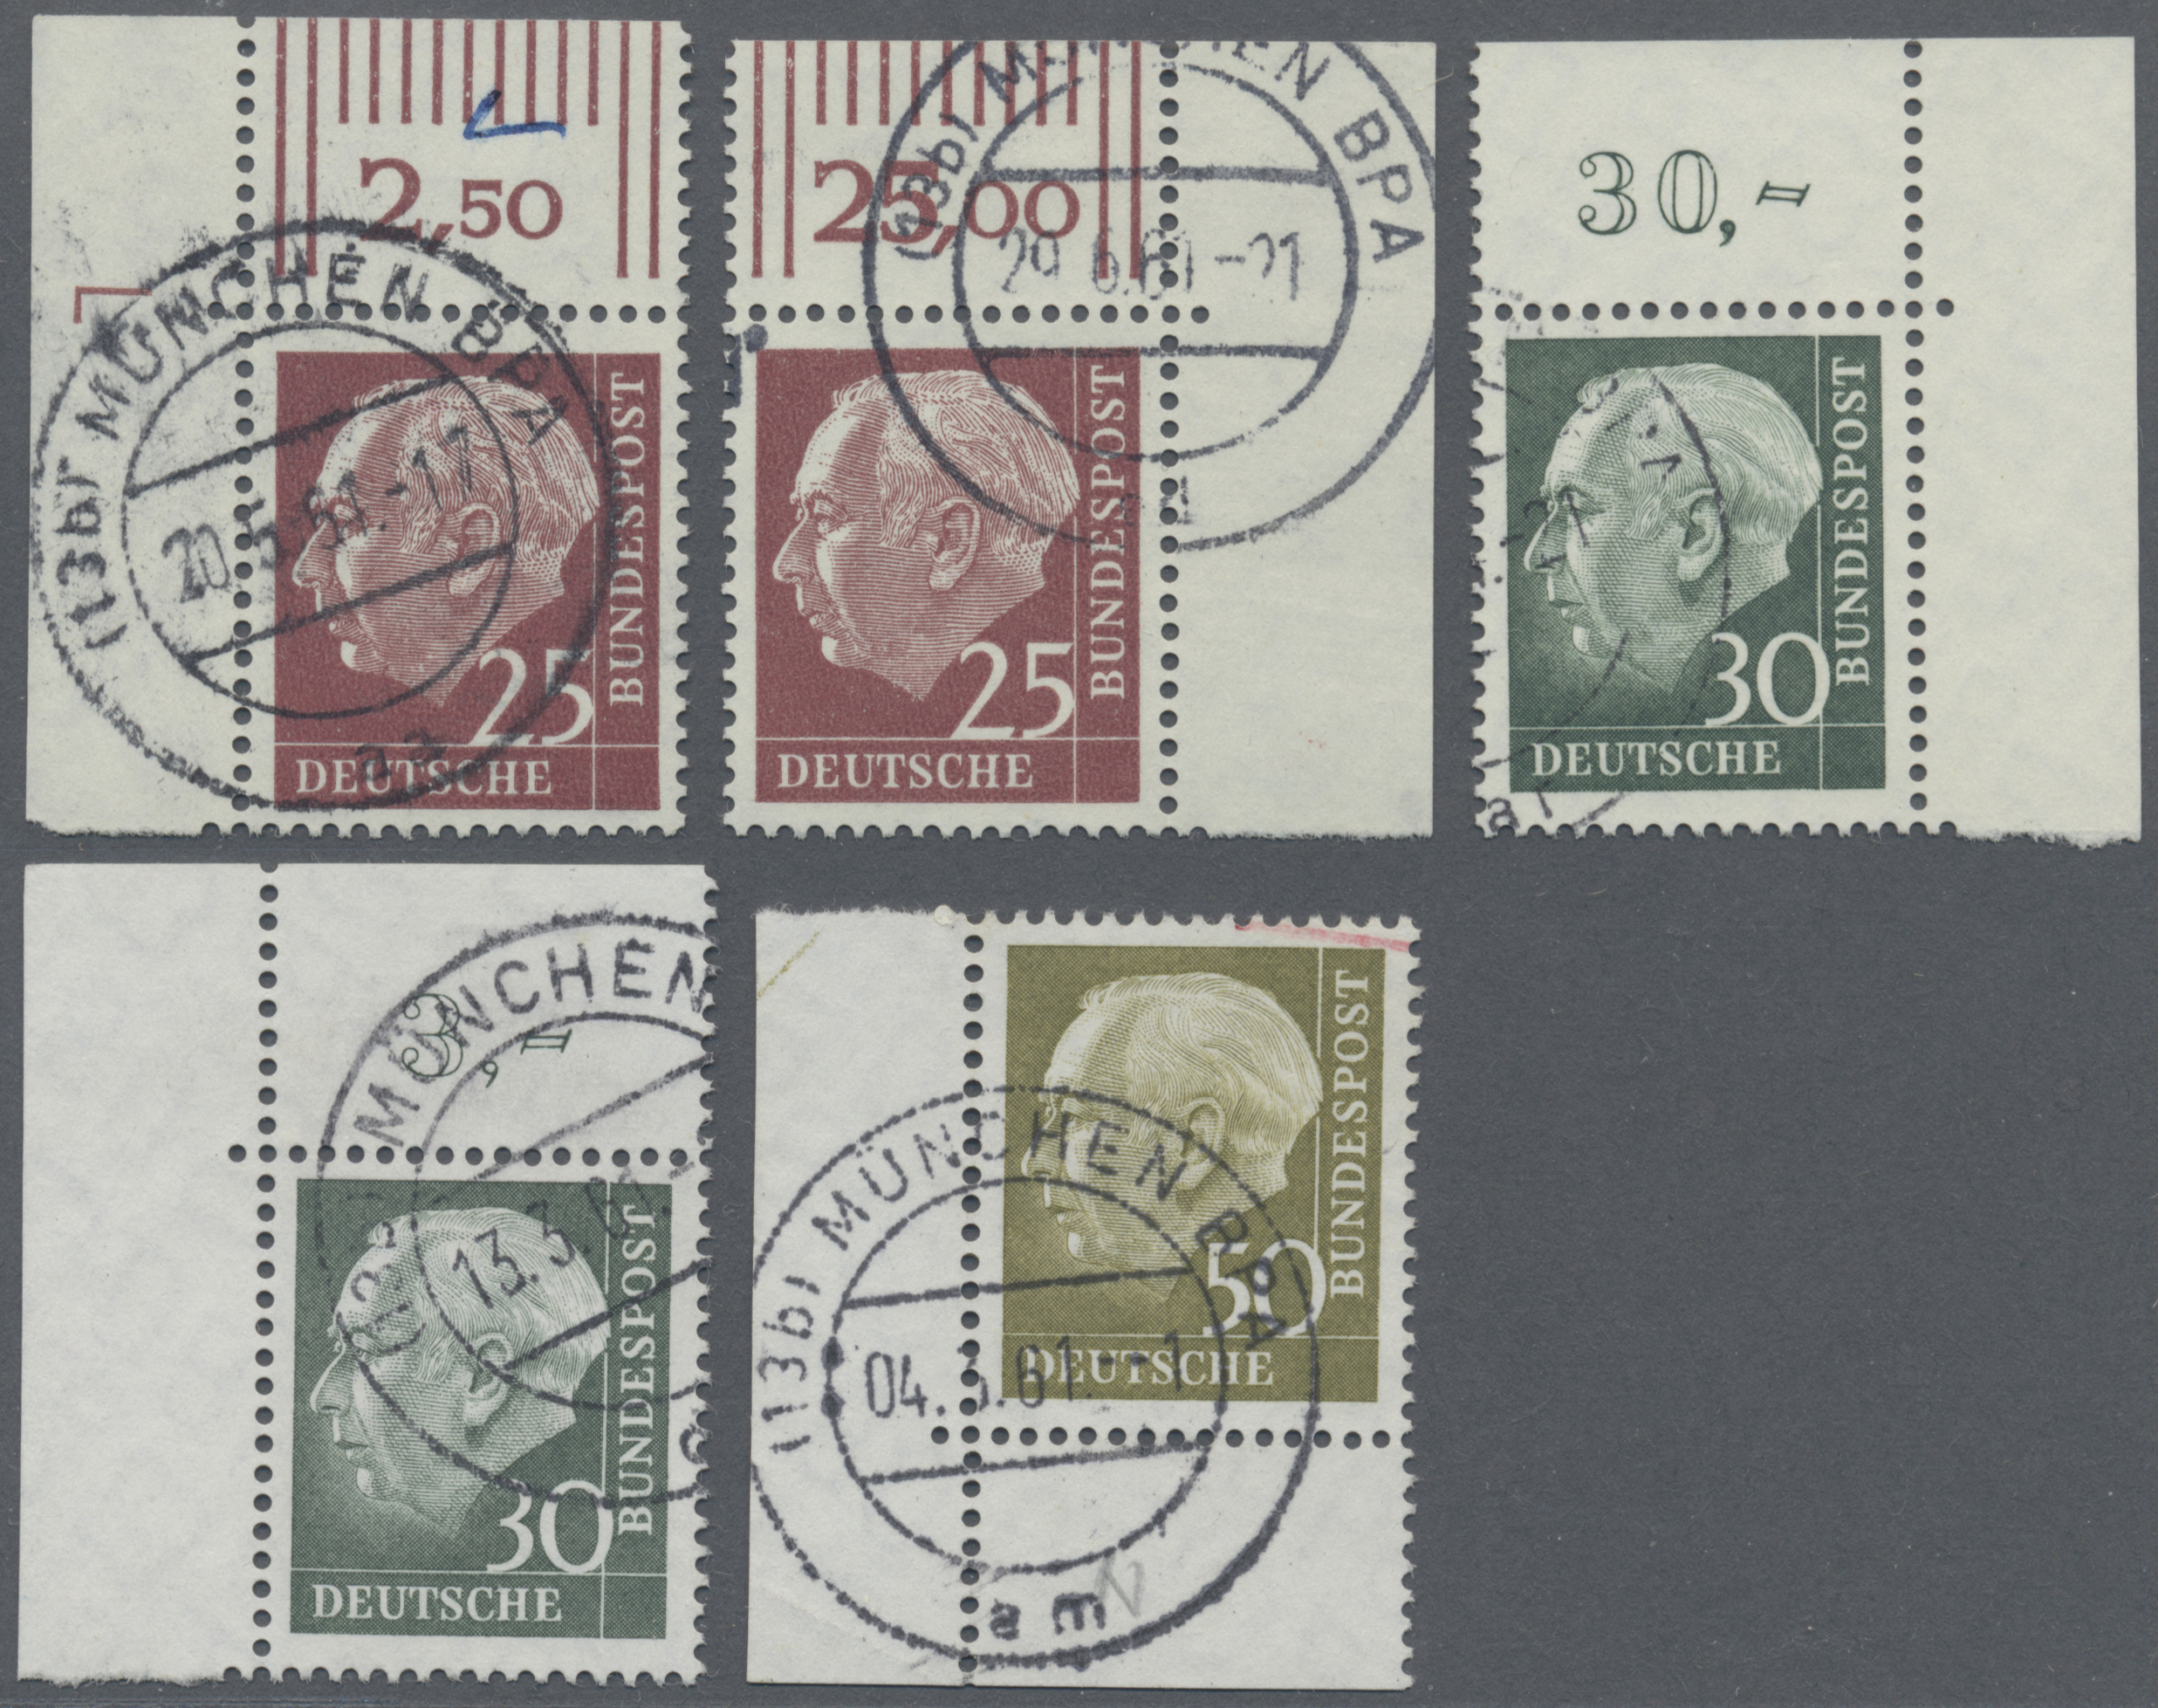 Lot 38435 - bundesrepublik deutschland  -  Auktionshaus Christoph Gärtner GmbH & Co. KG Collections Germany,  Collections Supplement, Surprise boxes #39 Day 7